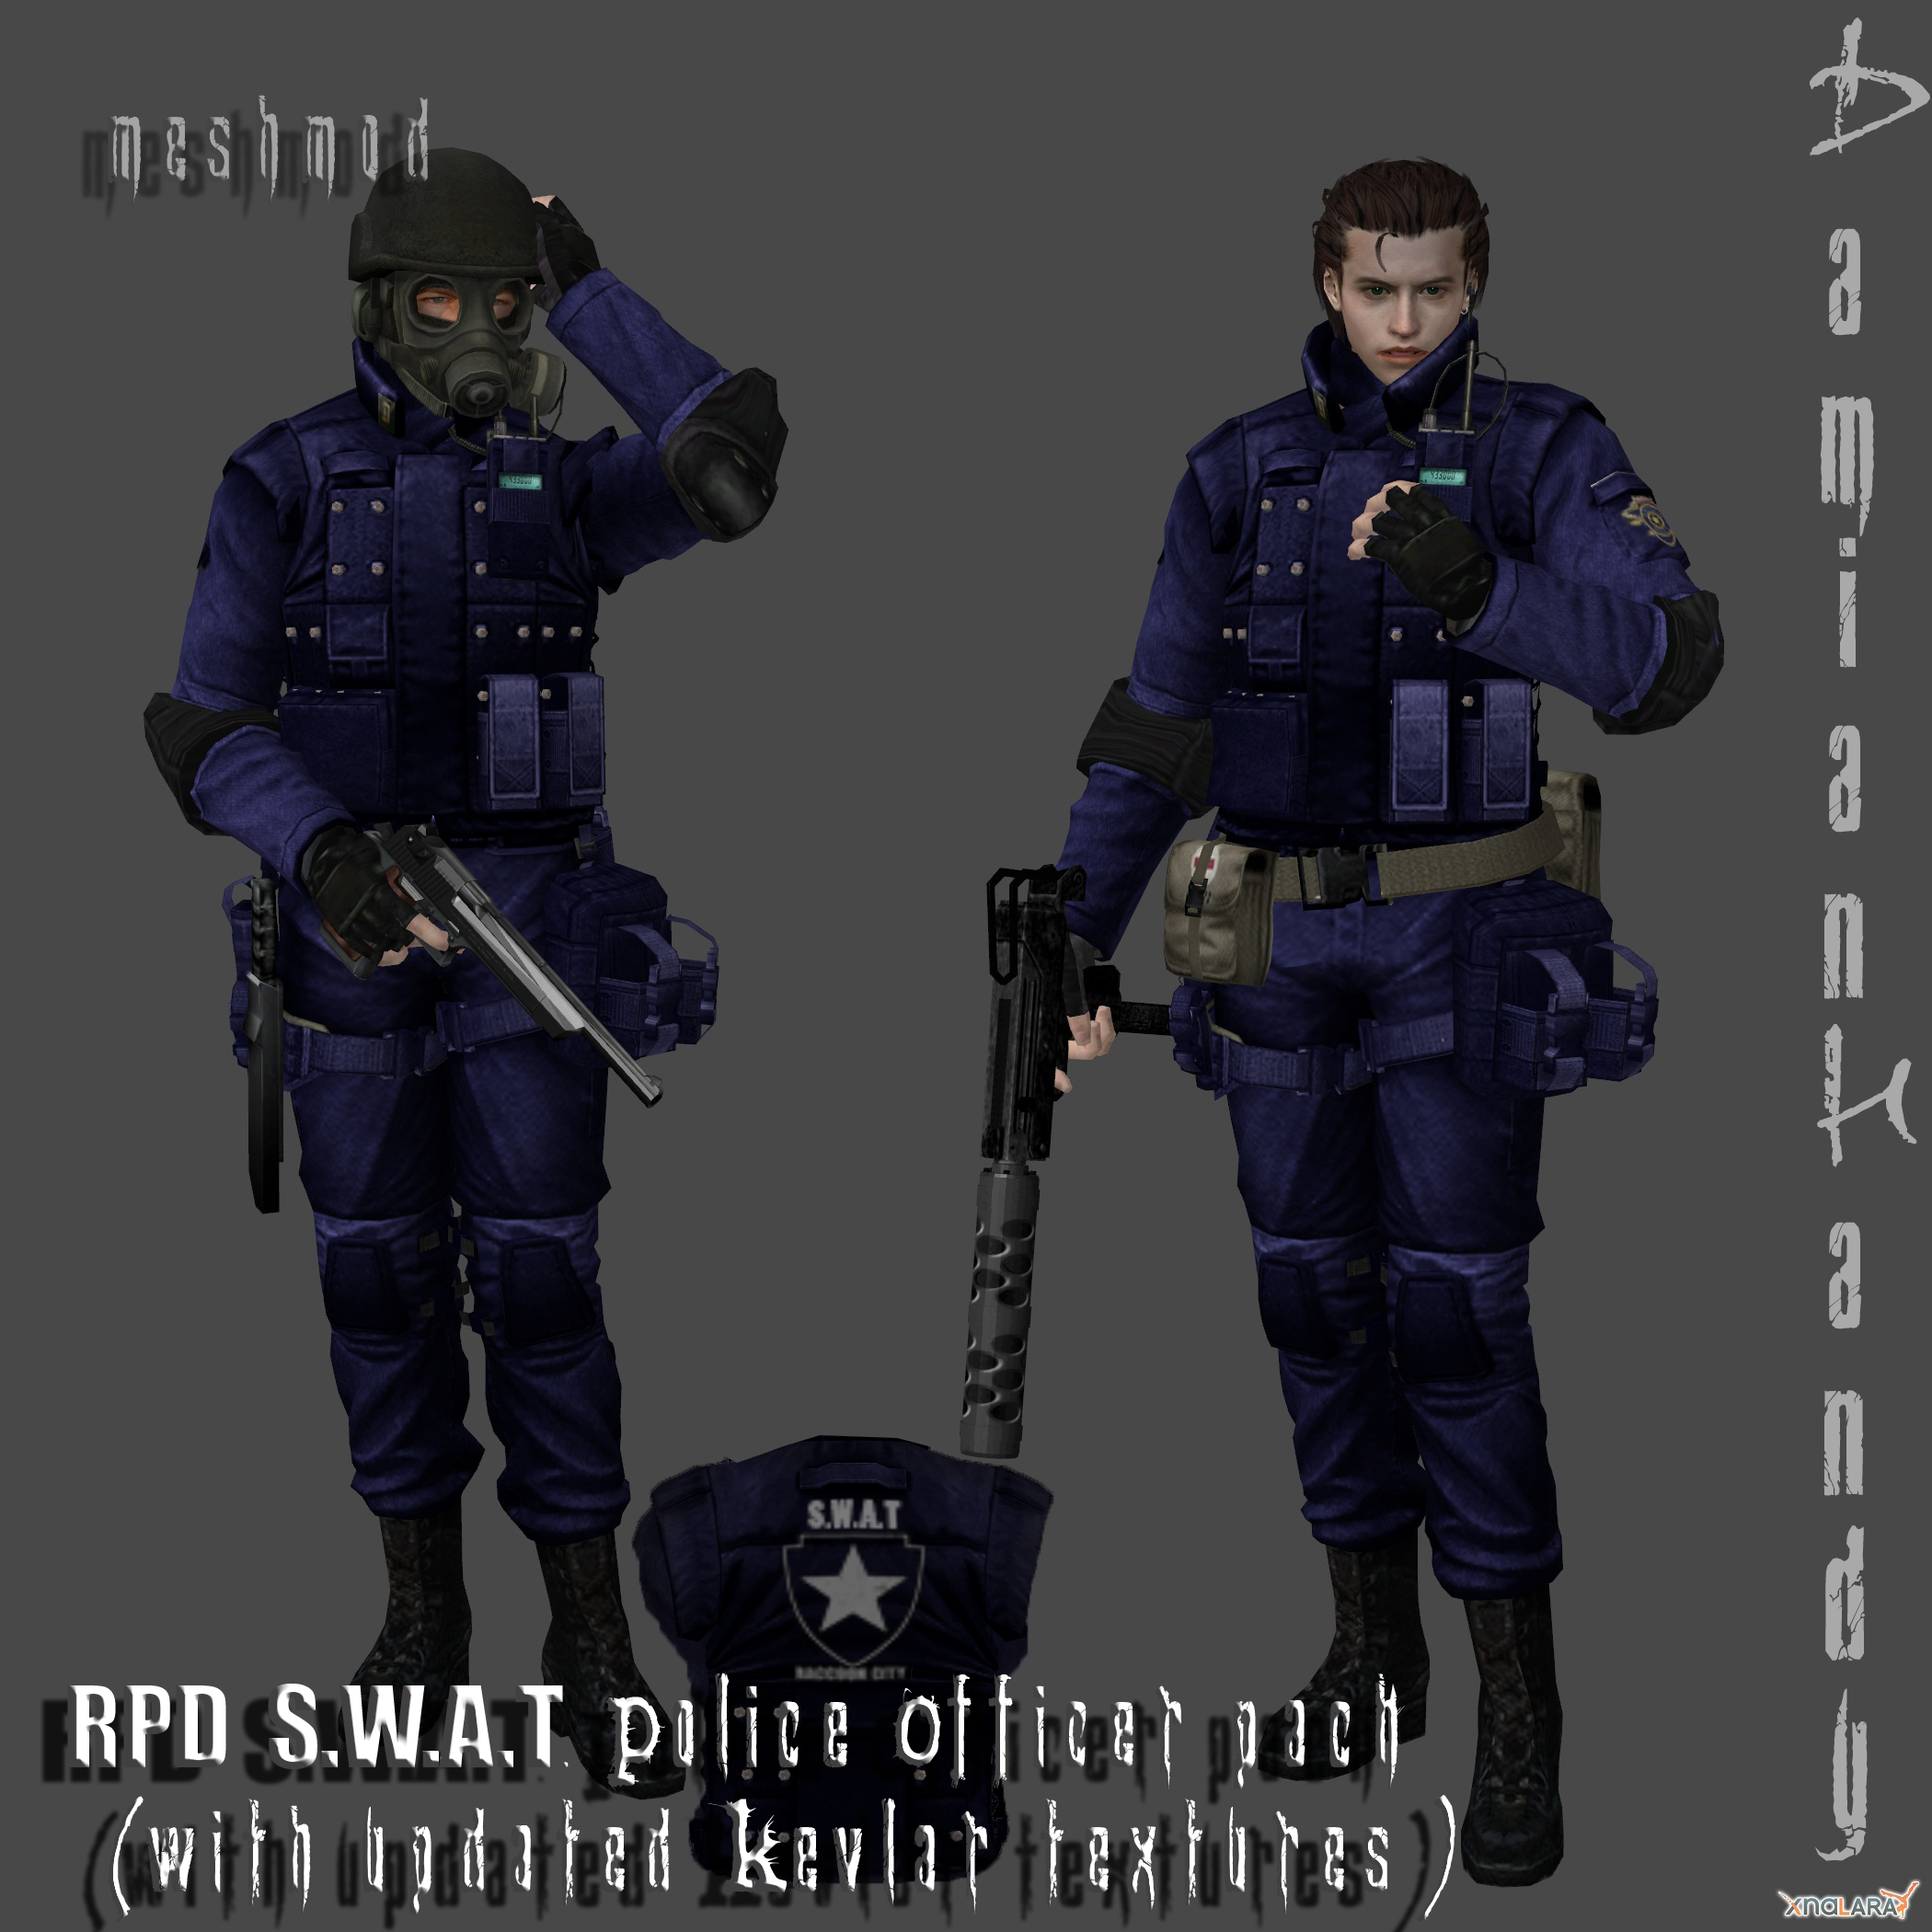 R.P.D. SWAT Officer Pack by DamianHandy on DeviantArt | 2100 x 2100 png 1746kB